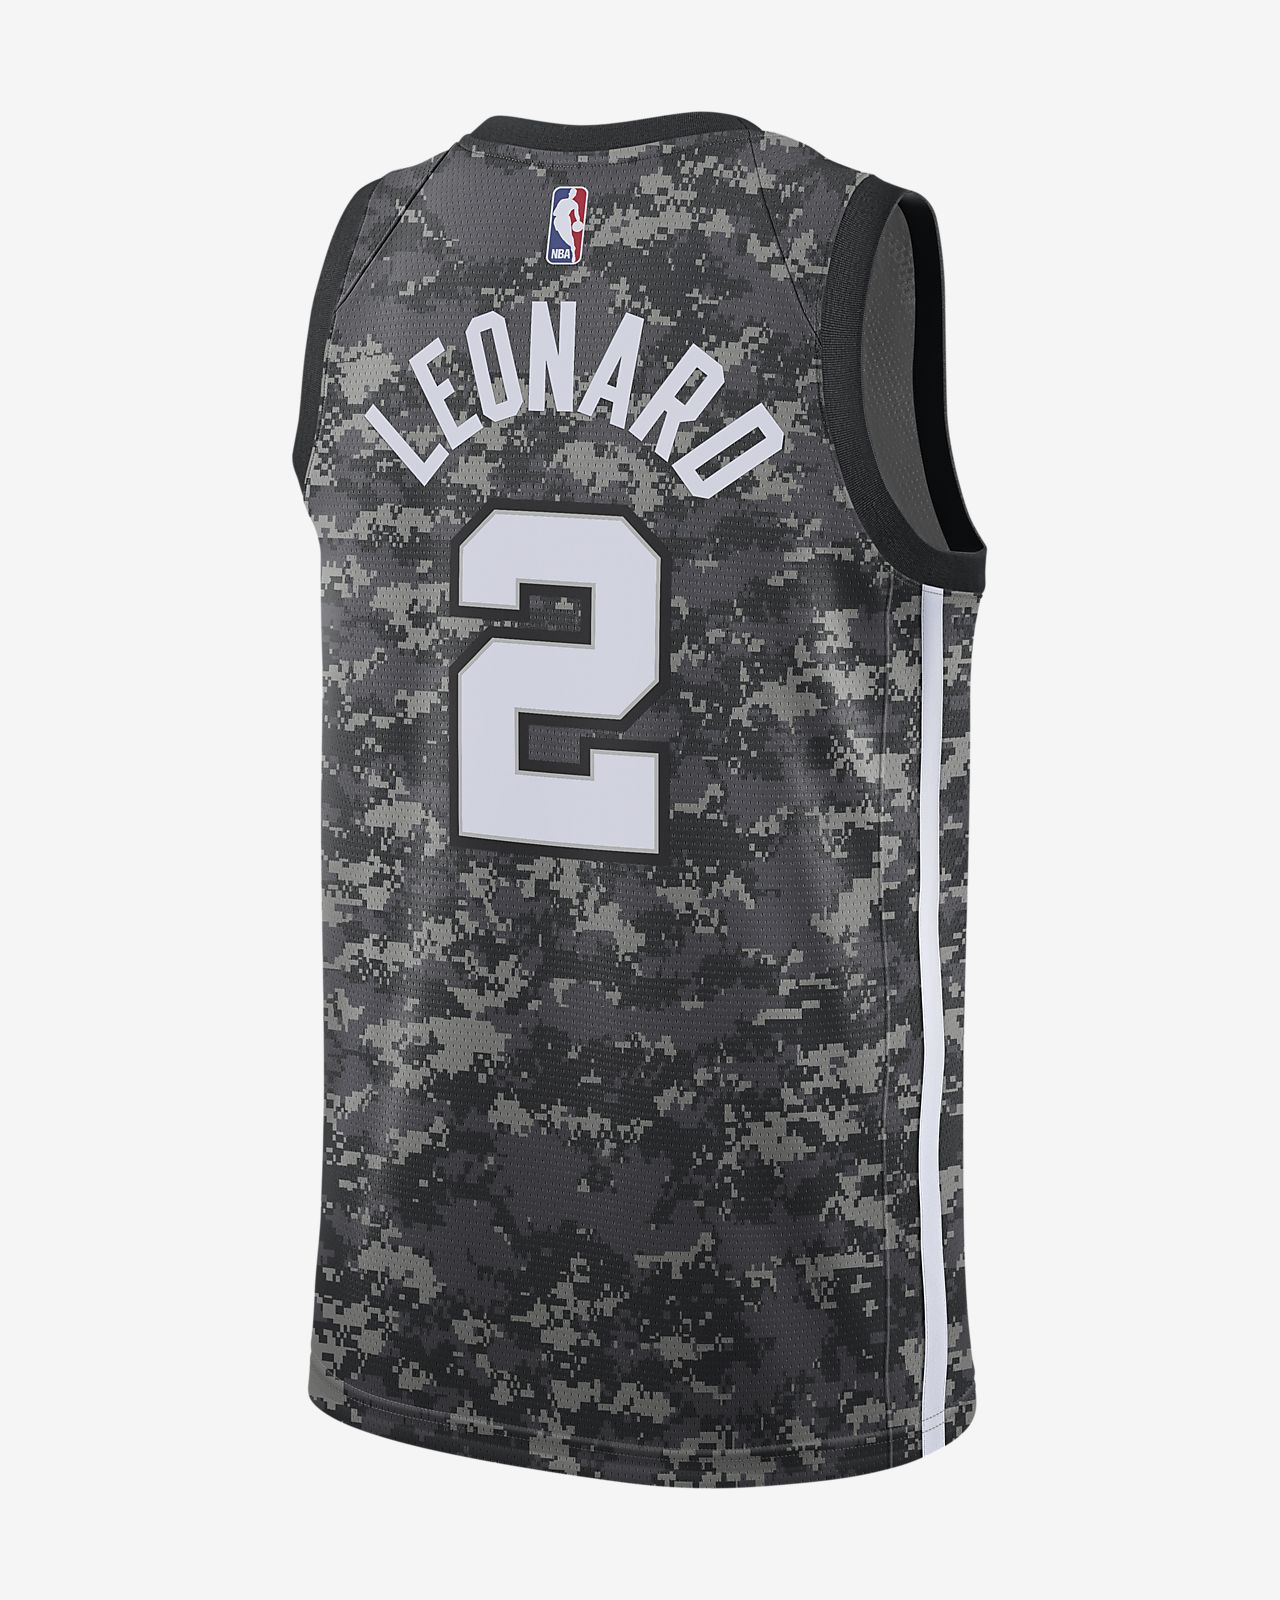 4860dc2811a kawhi leonard city edition swingman jersey san antonio spurs mens nike nba  jersey